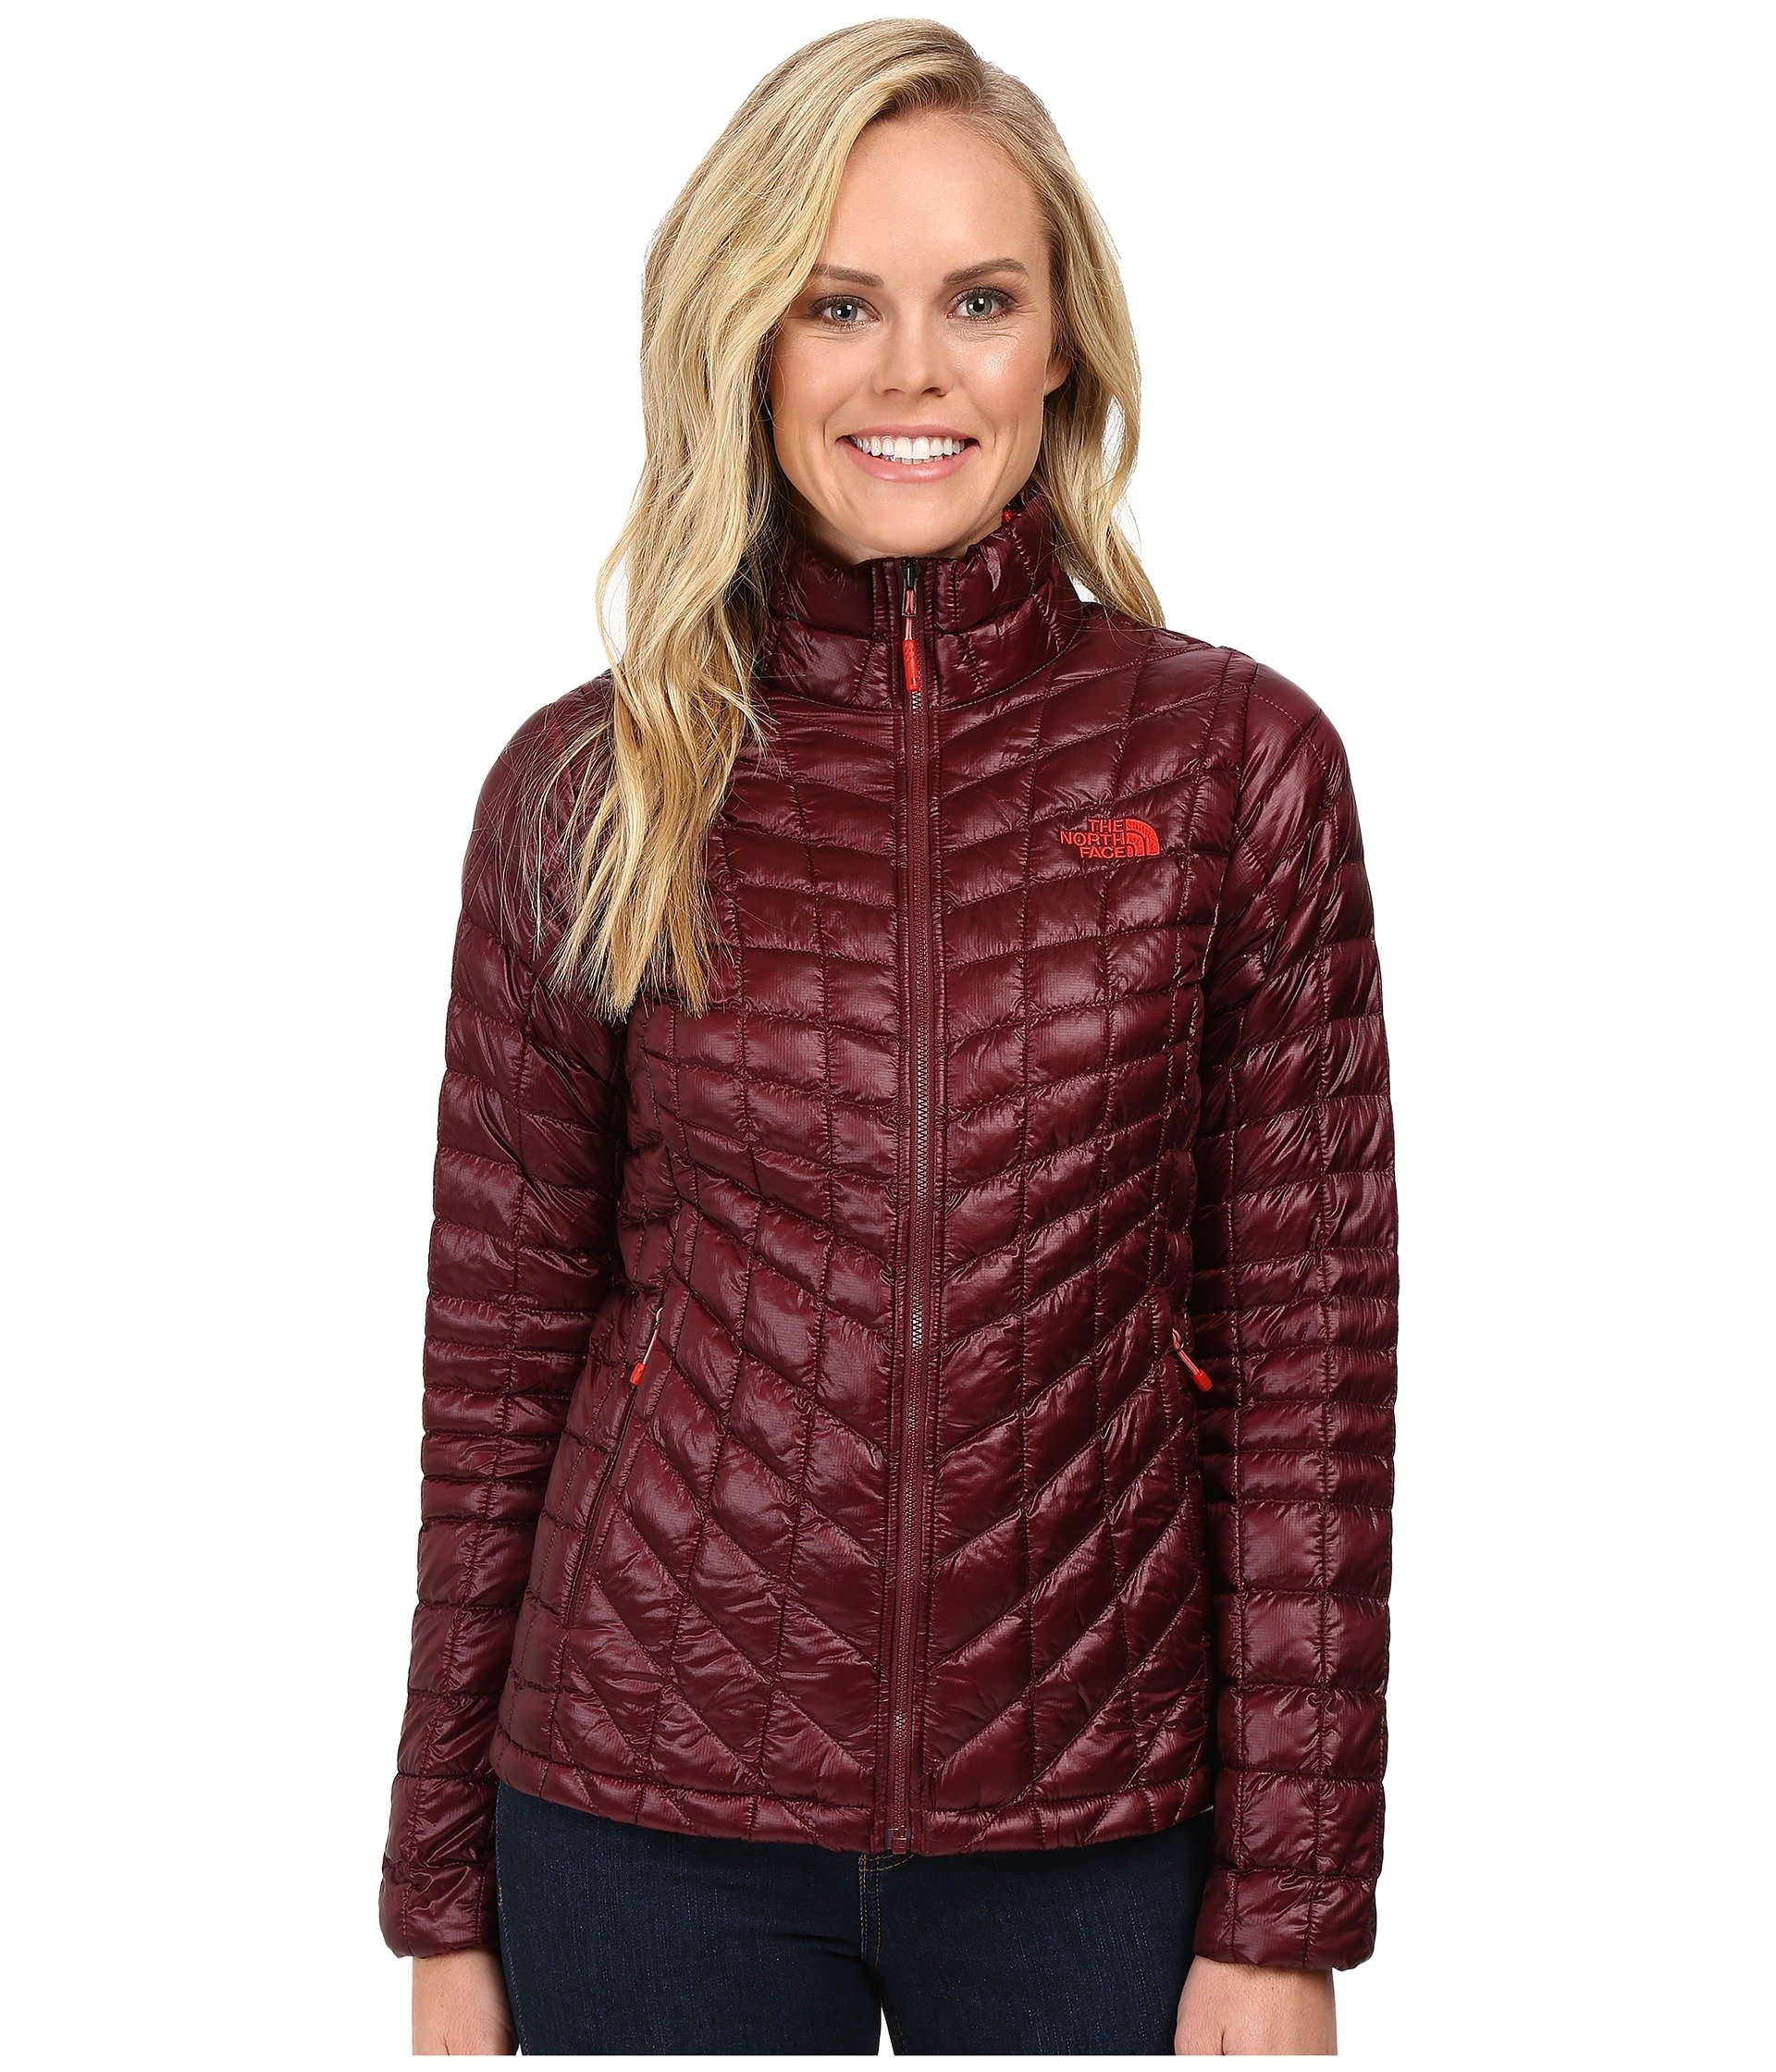 The North Face Women's Thermoball Full Zip Jacket, Deep Garnet Red, LG by The North Face